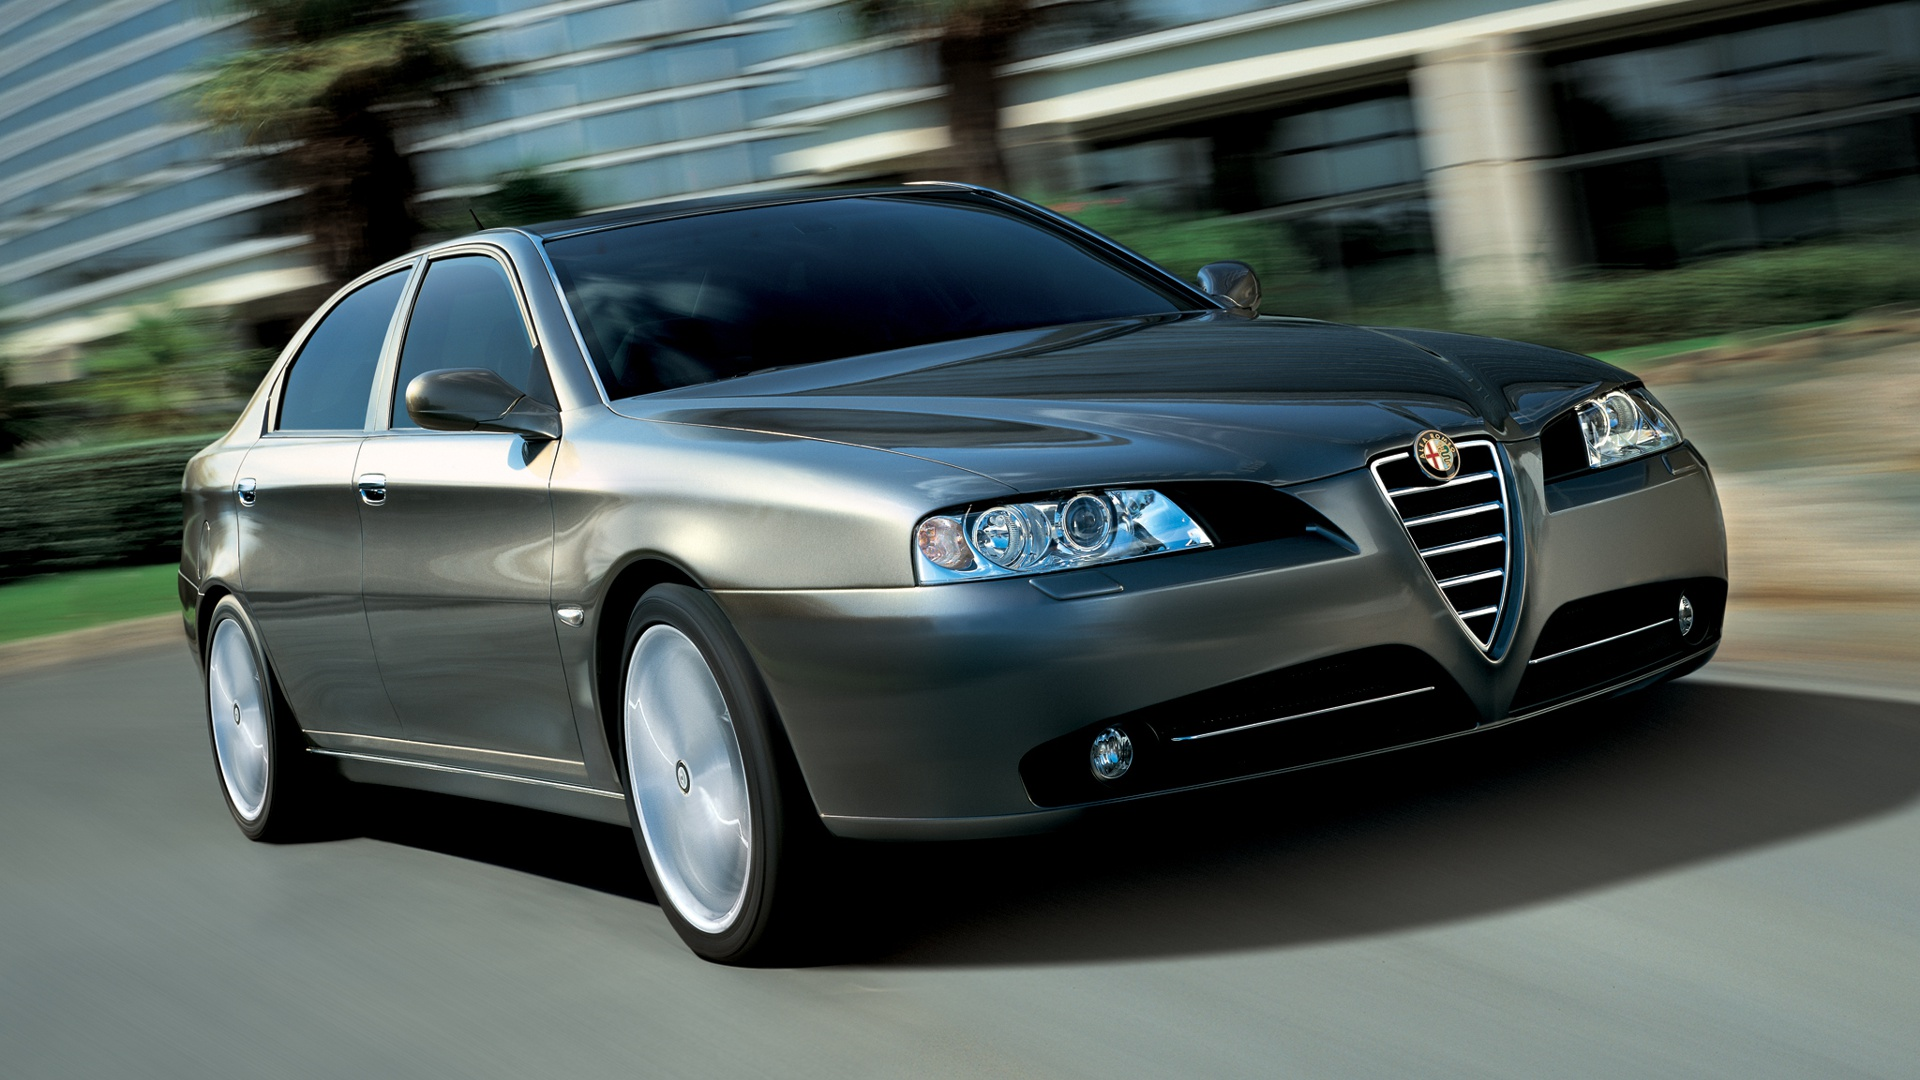 alfa romeo 166 wallpaper